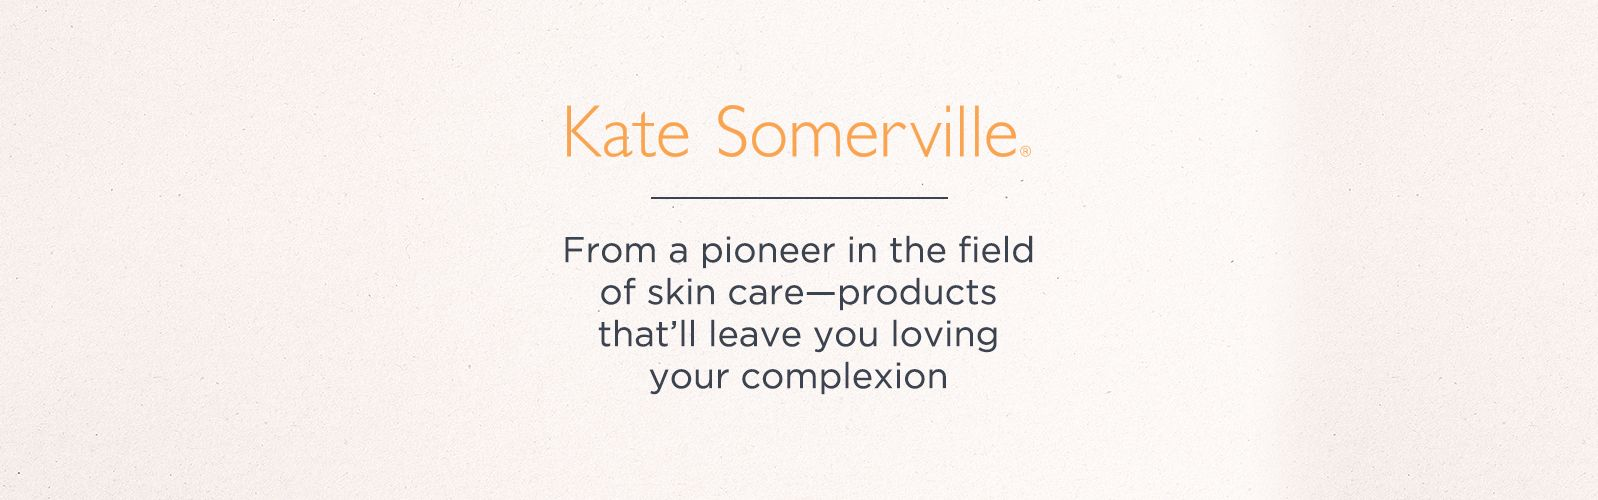 Kate Somerville, From a pioneer in the field of skin care—products that'll leave you loving your complexion